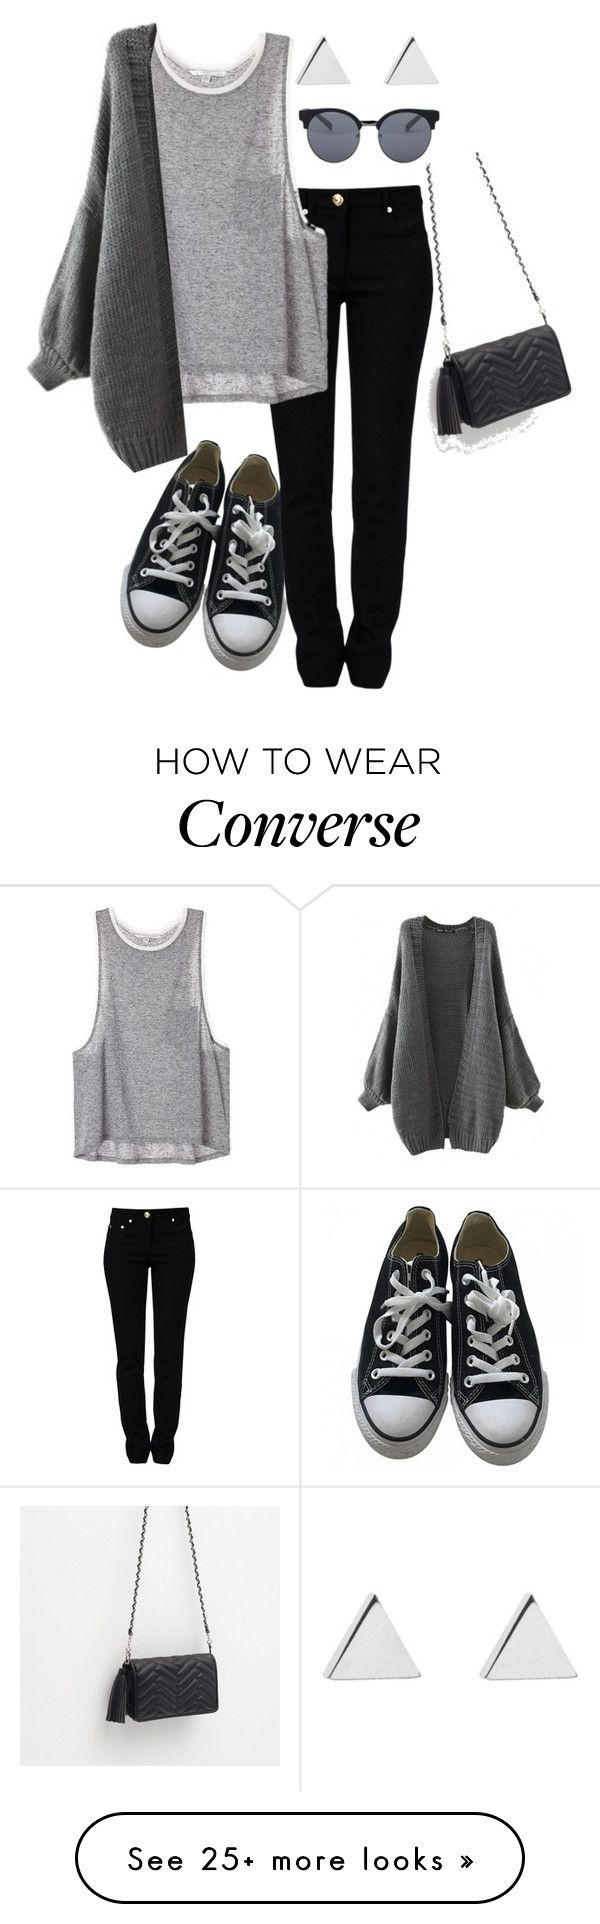 """""""Untitled #95"""" by afrobp on Polyvore featuring Moschino, Converse, Jennifer Meyer Jewelry, Quay and Zara"""